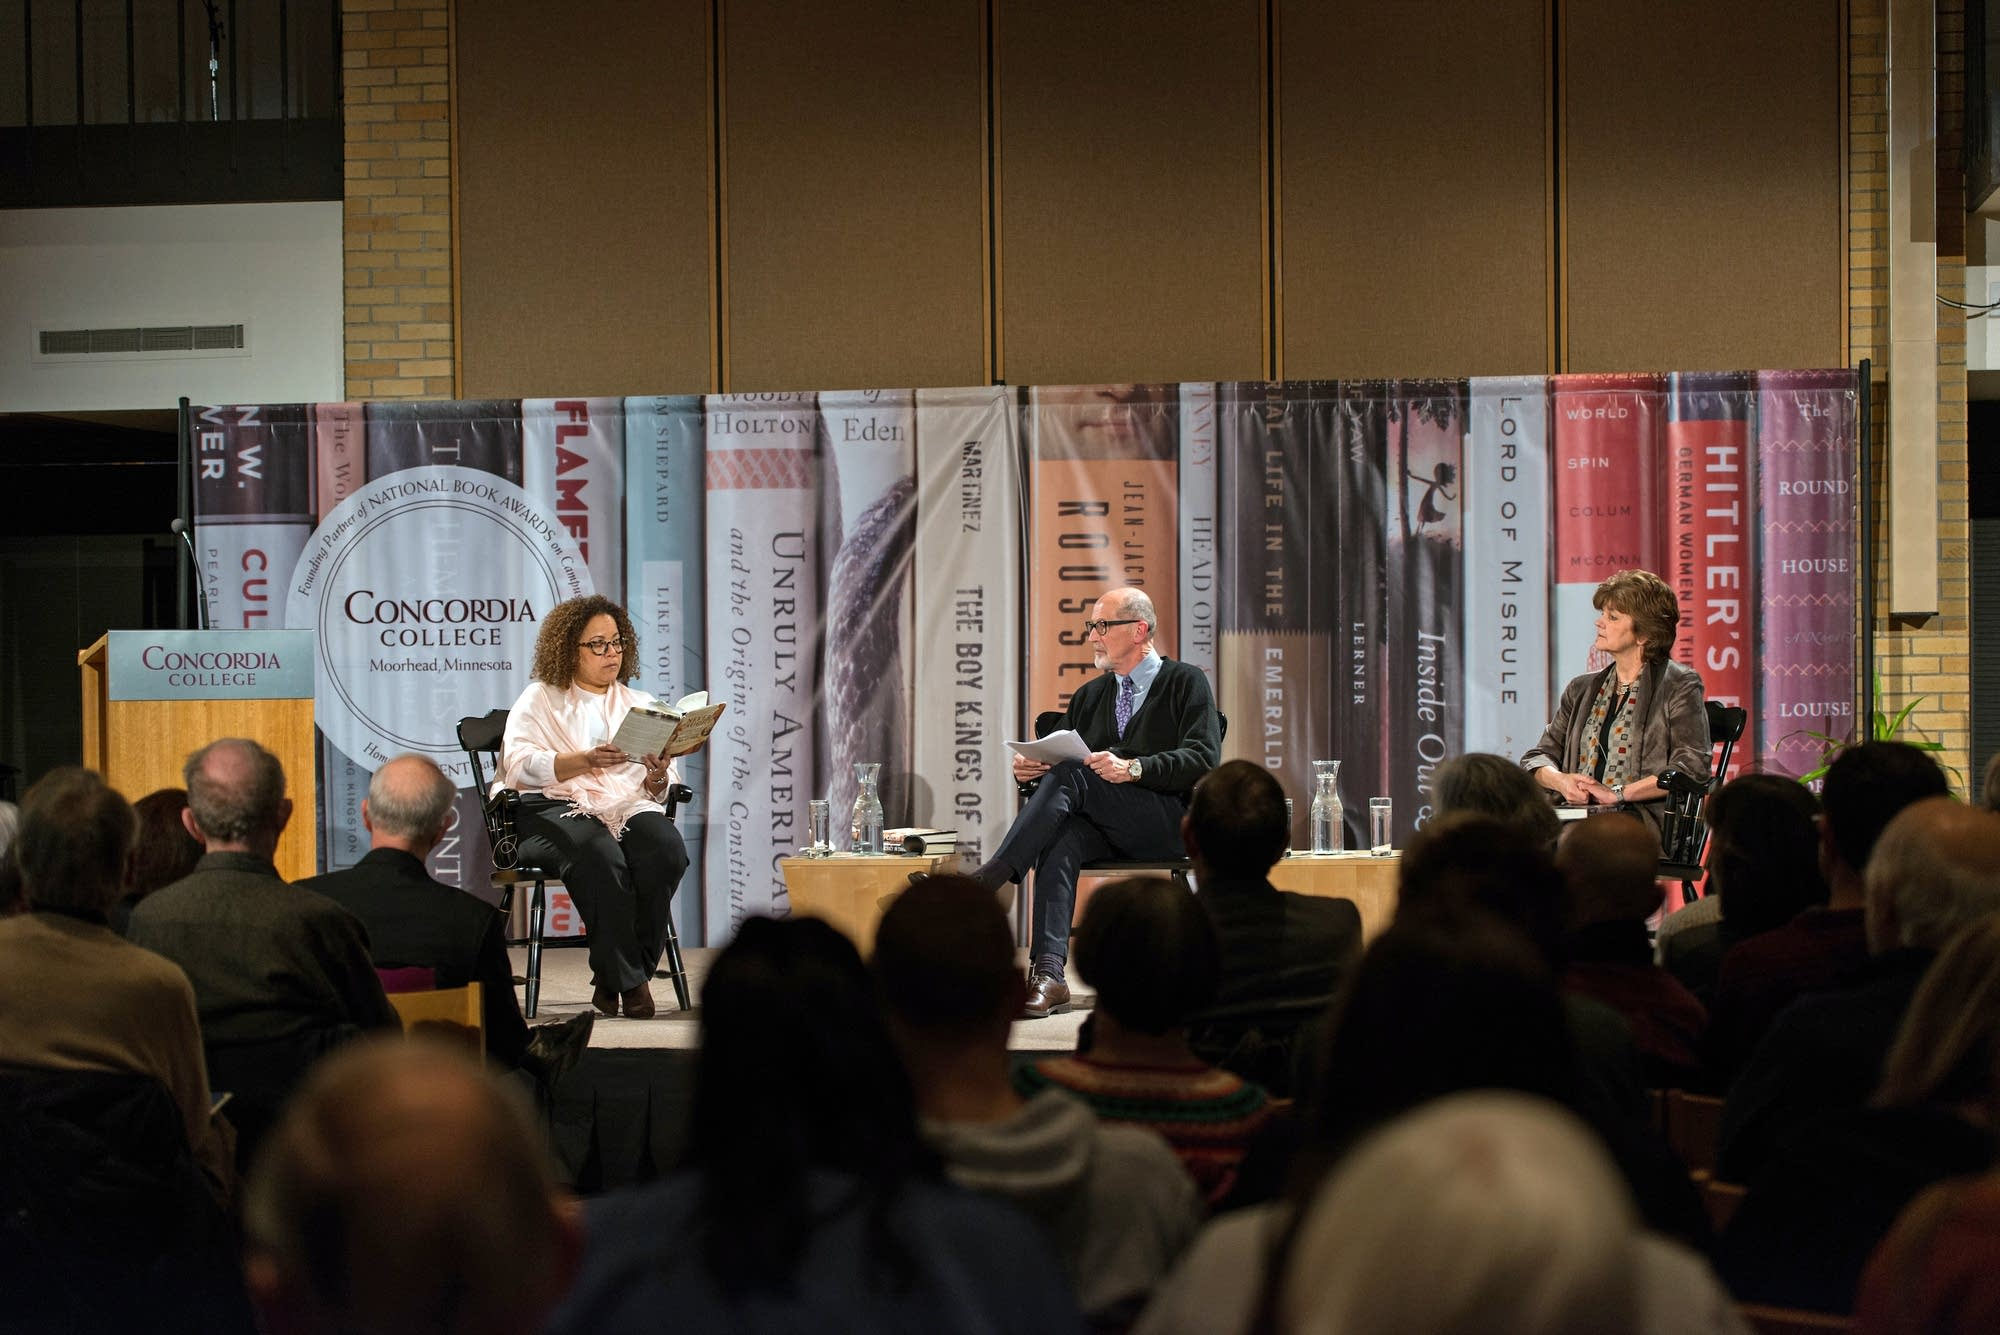 National Book Award event at Concordia College Moorhead March 15, 2018